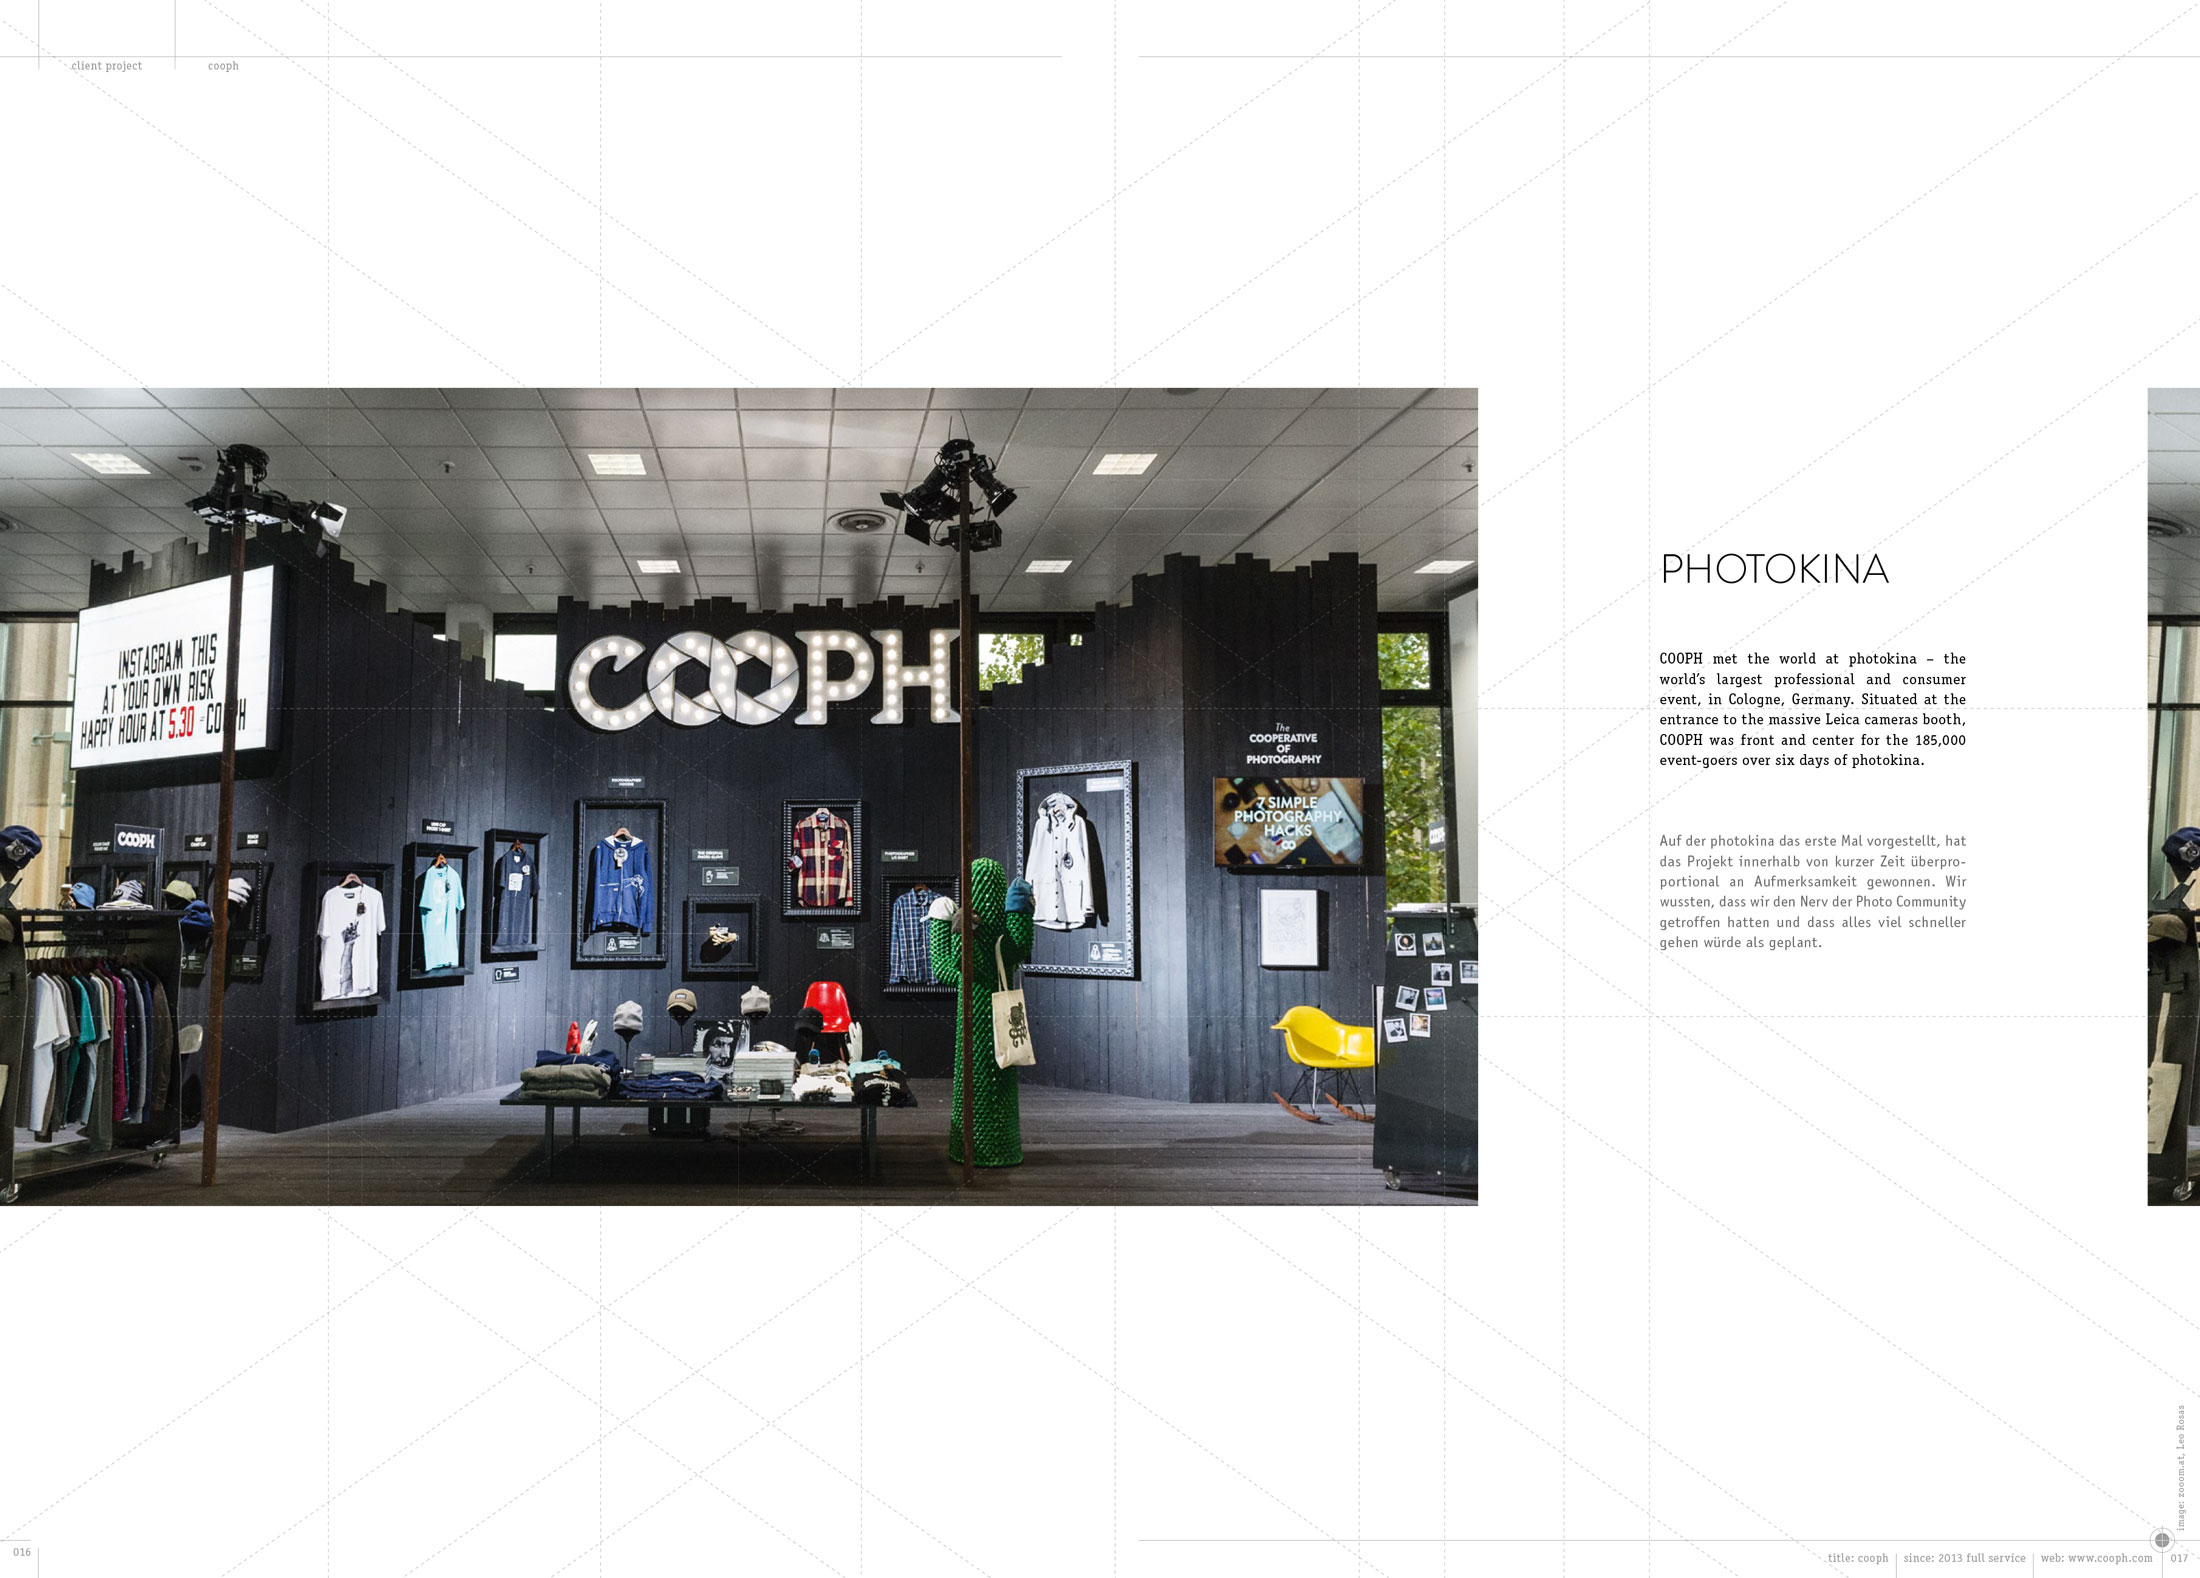 p.016 — Cooph booth at Photokina.